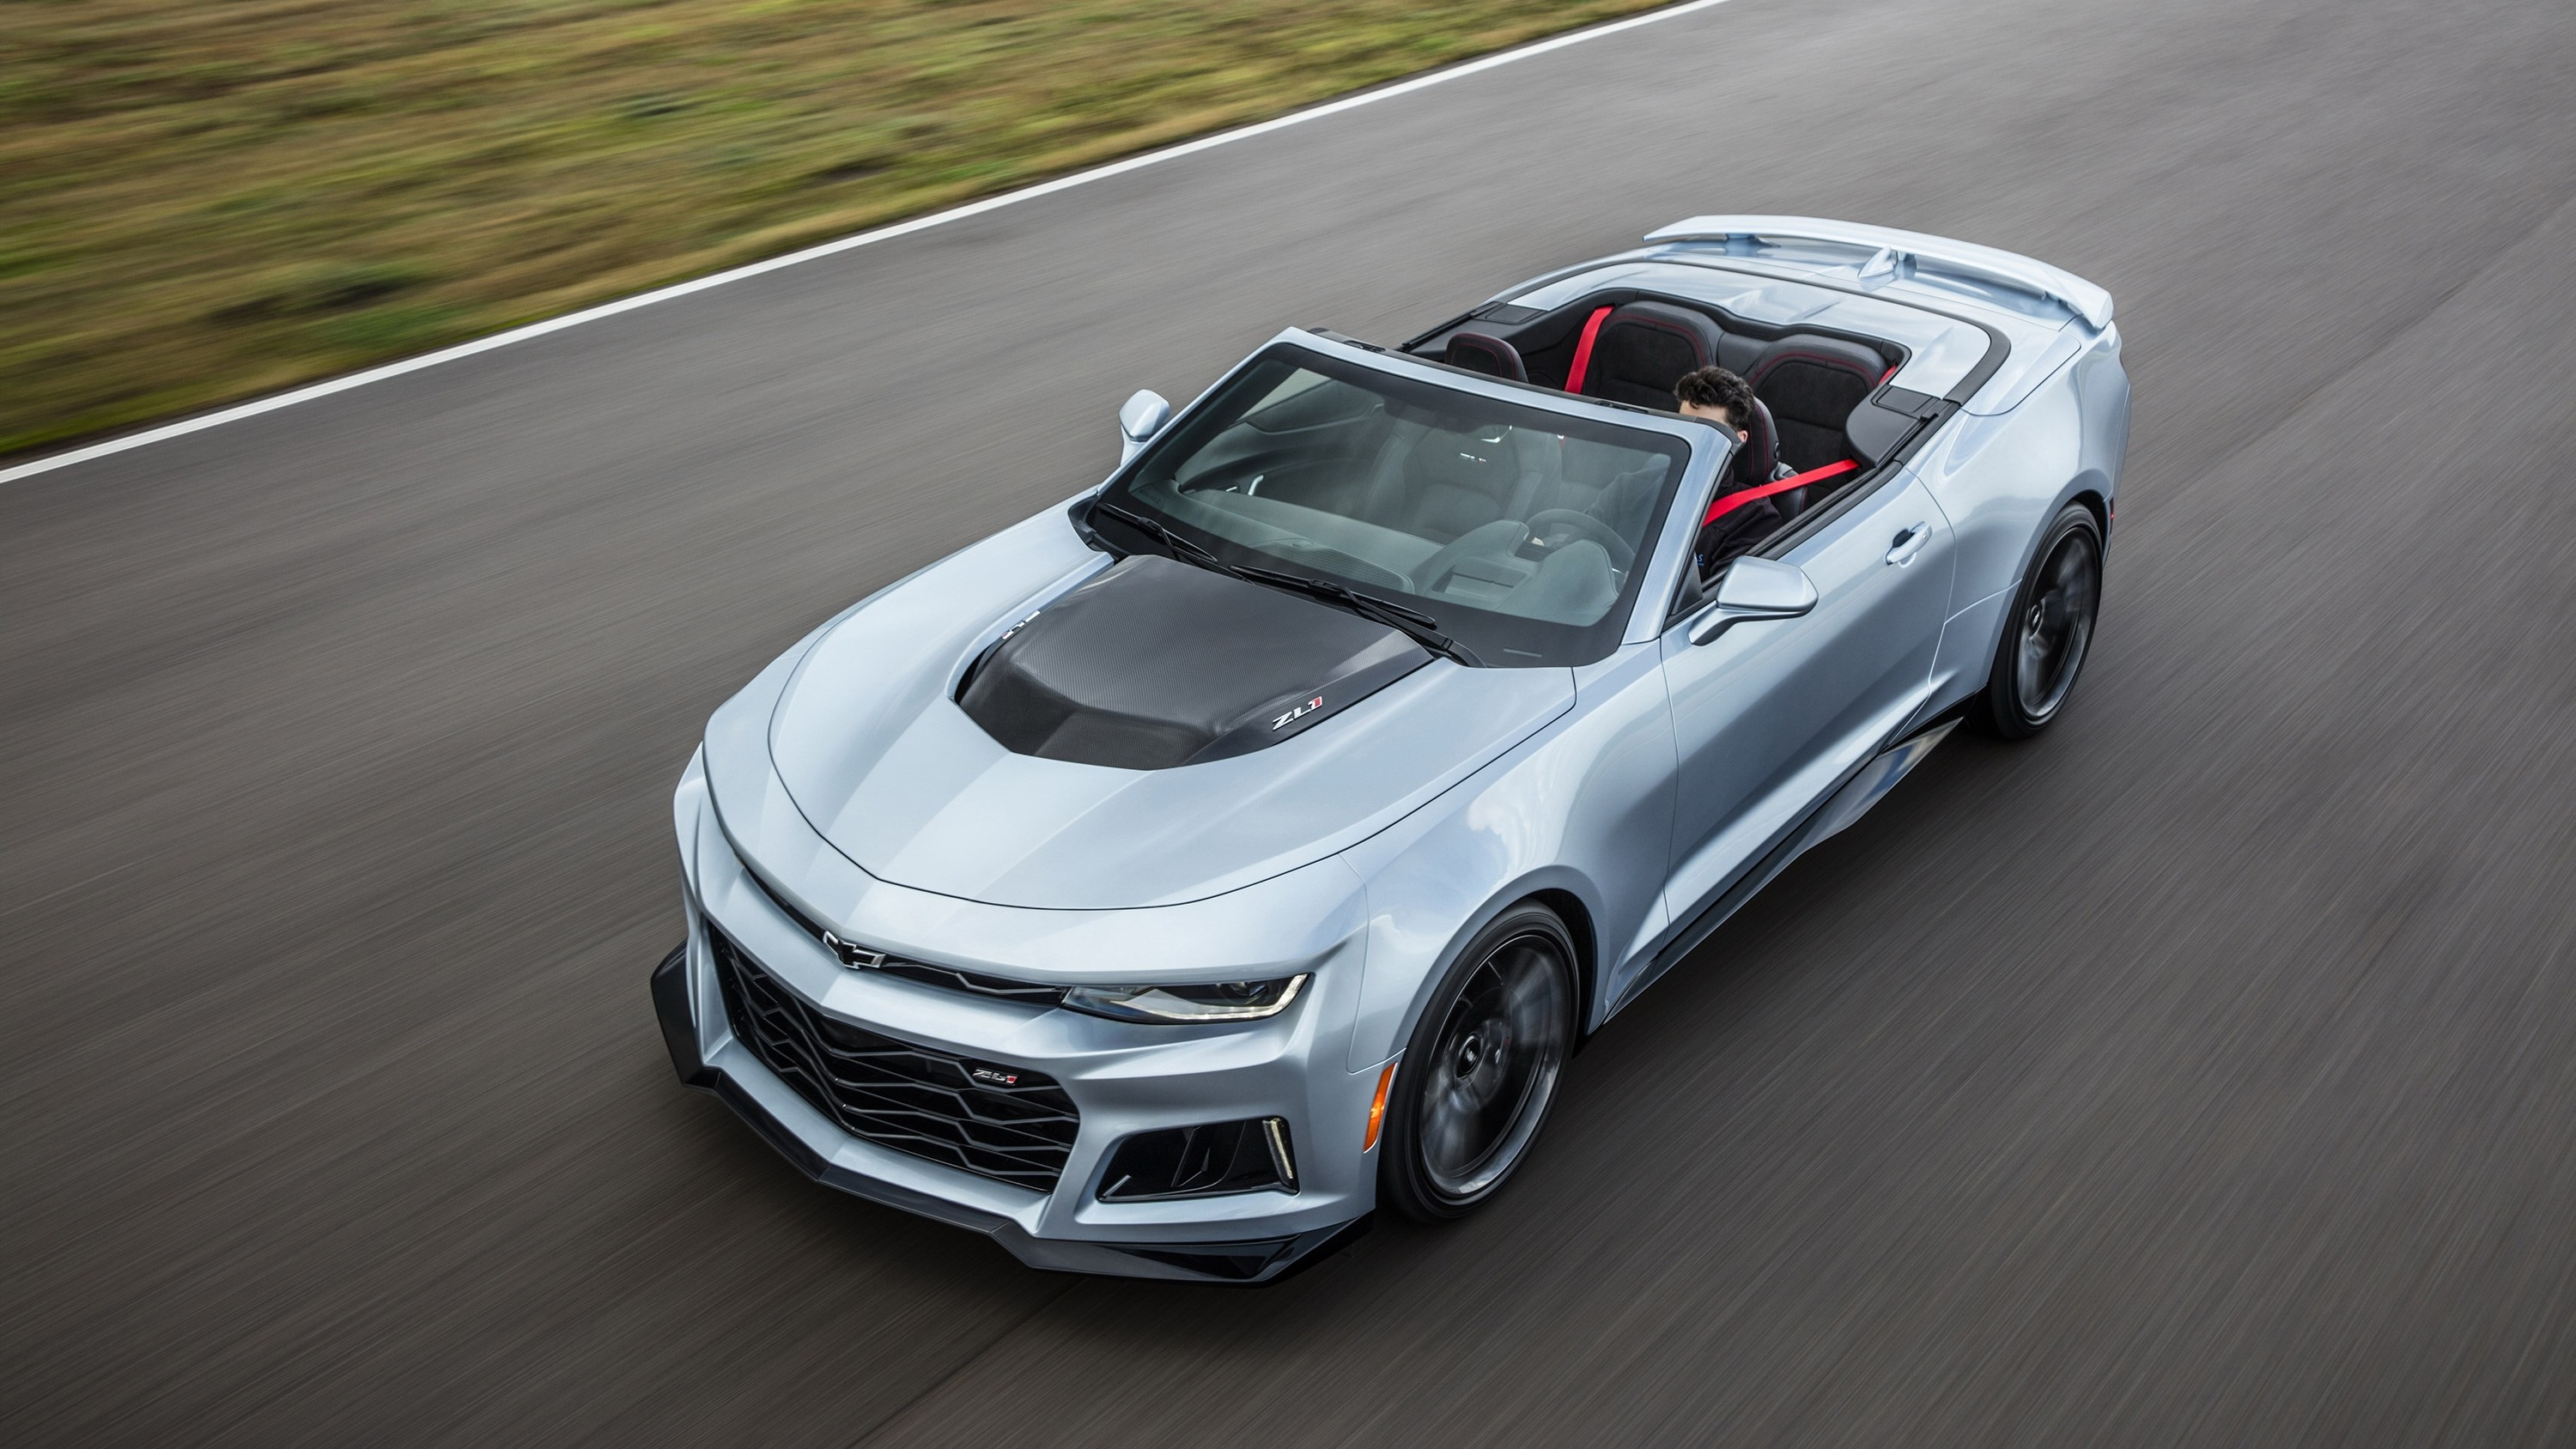 Res: 3000x1688, The Camaro ZL1 was revived in 2012 after more than 40 years since its  initial introduction as a supercharged, range-topping version of the  fifth-generation ...